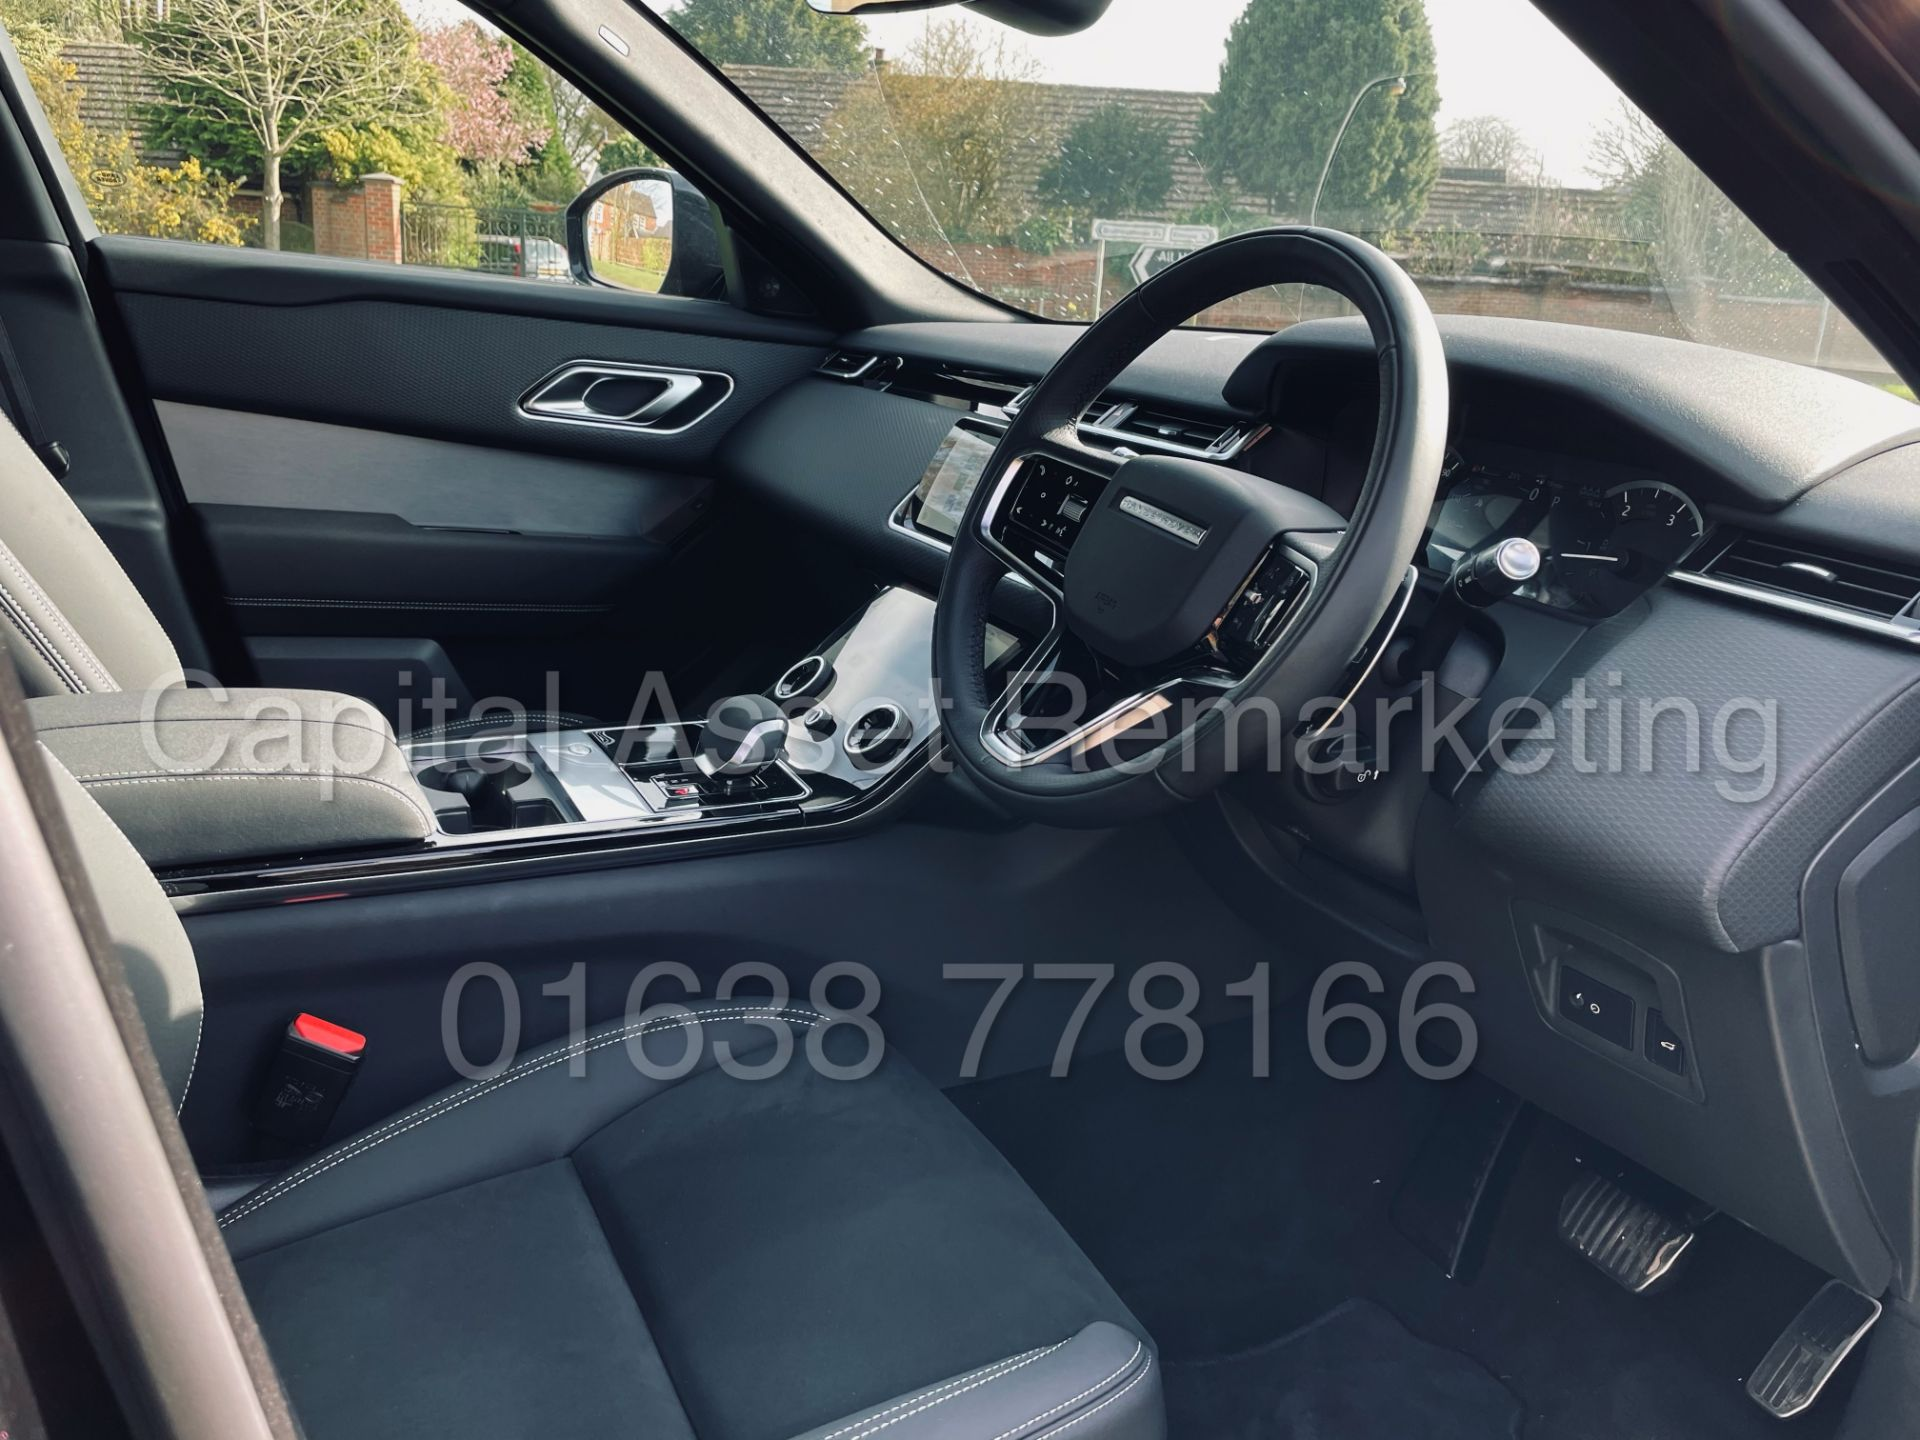 (On Sale) RANGE ROVER VELAR *R-DYNAMIC* SUV (2021) *8 SPEED AUTO - LEATHER* (DELIVERY MILES) - Image 36 of 50